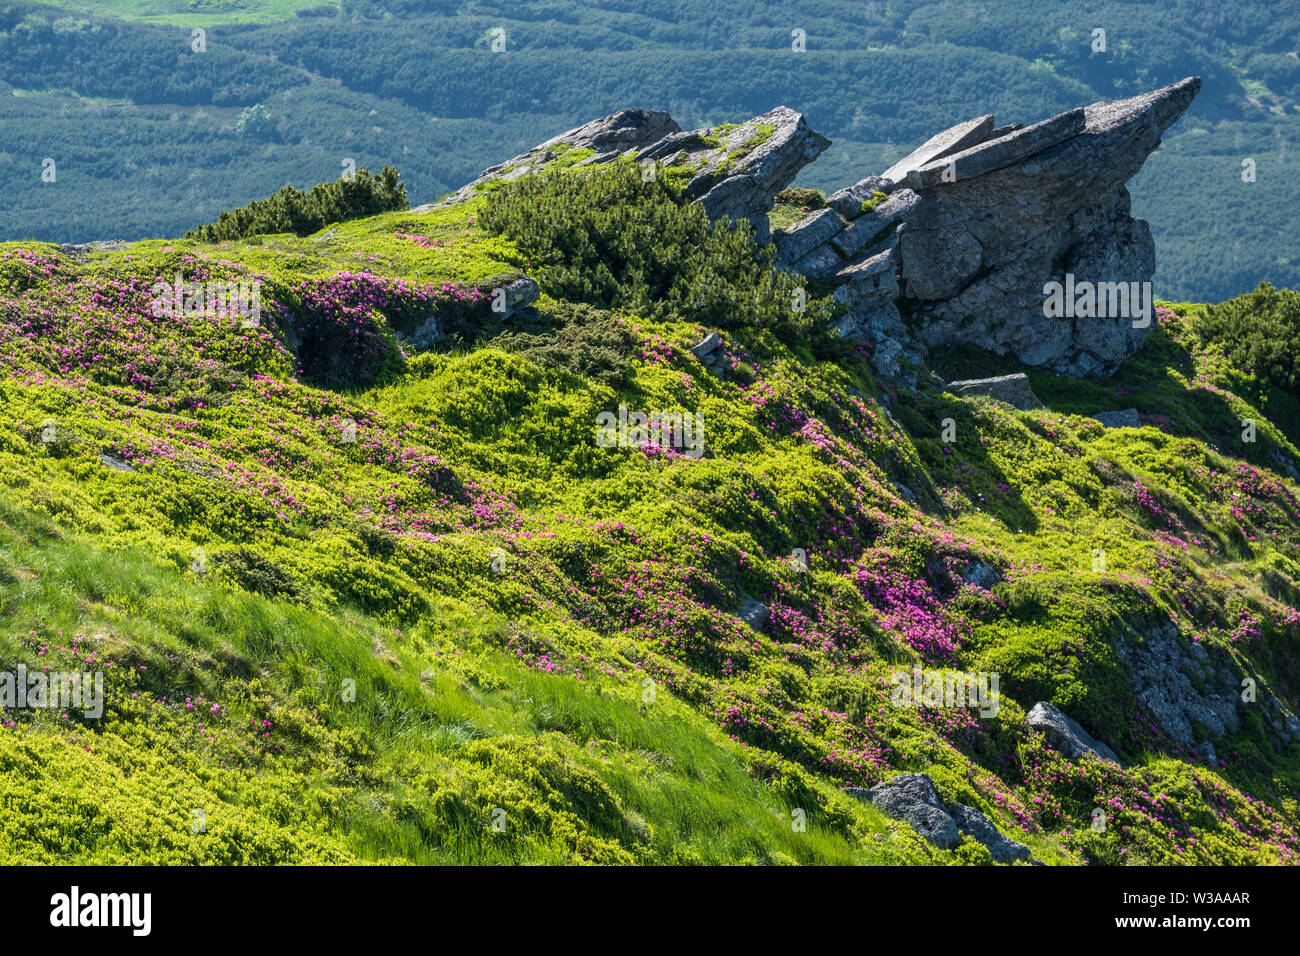 Pink rose rhododendron flowers and big rocky boulders on summer mountain slope. Carpathian, Chornohora, Ukraine. Stock Photo